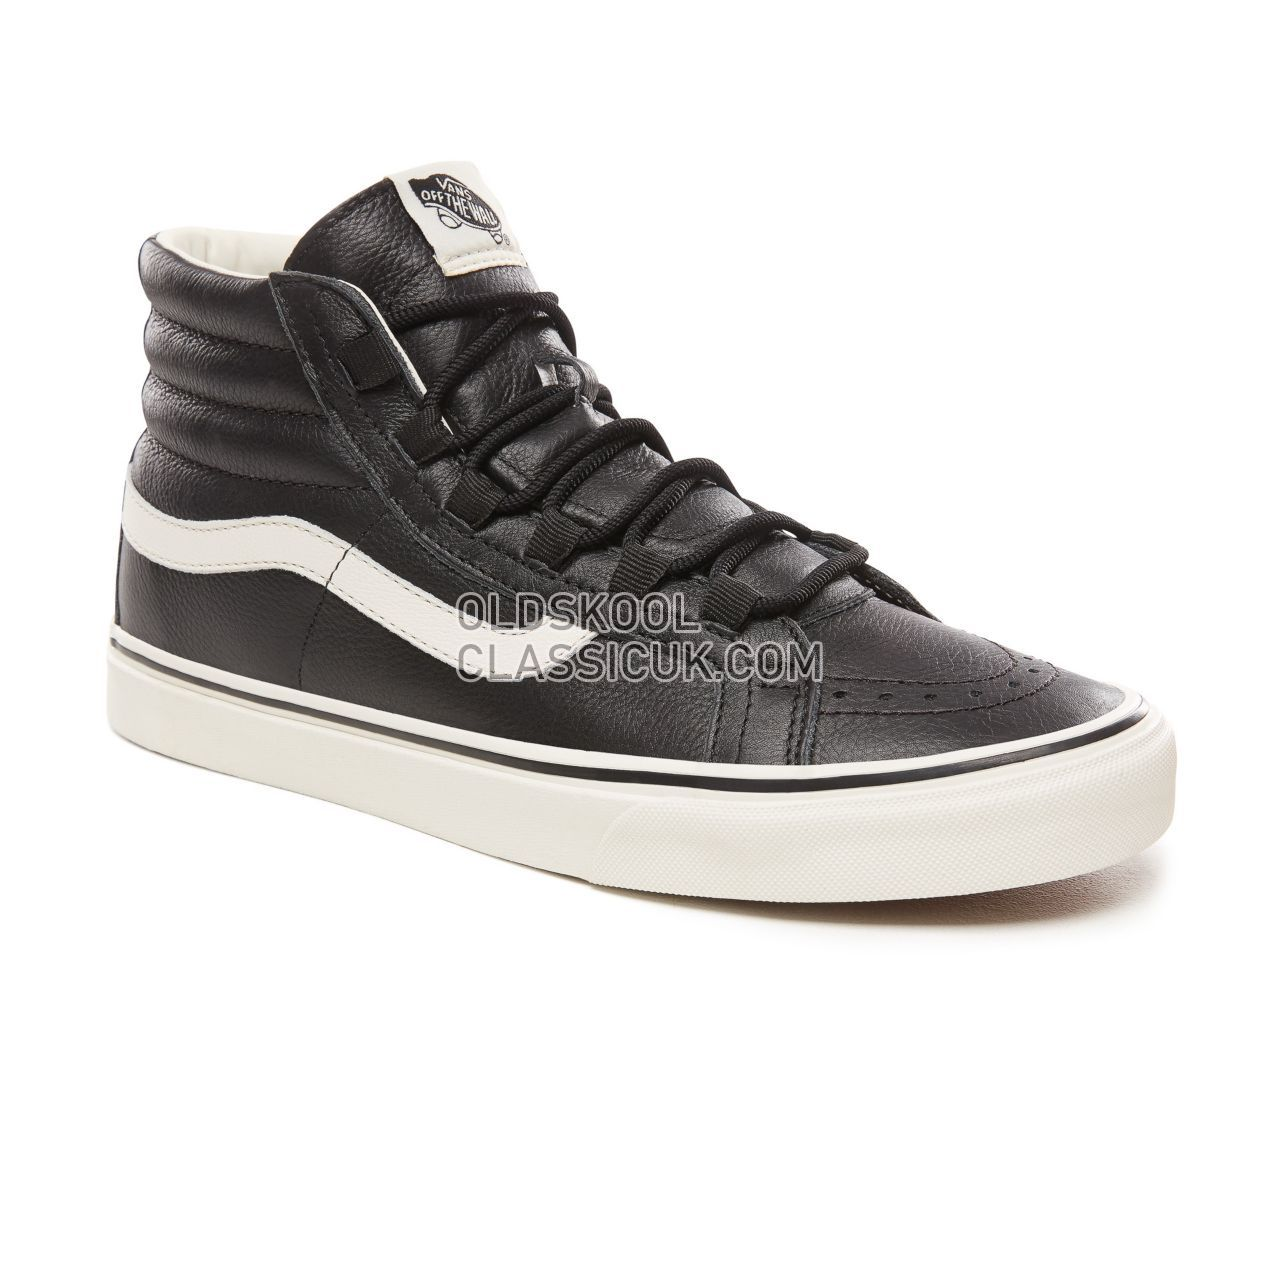 5b6d58f819 Vans Leather Sk8-Hi Reissue Ghillie Sneakers Mens (Leather)  Black/Marshmallow VN0A3ZCH68X Shoes - £50